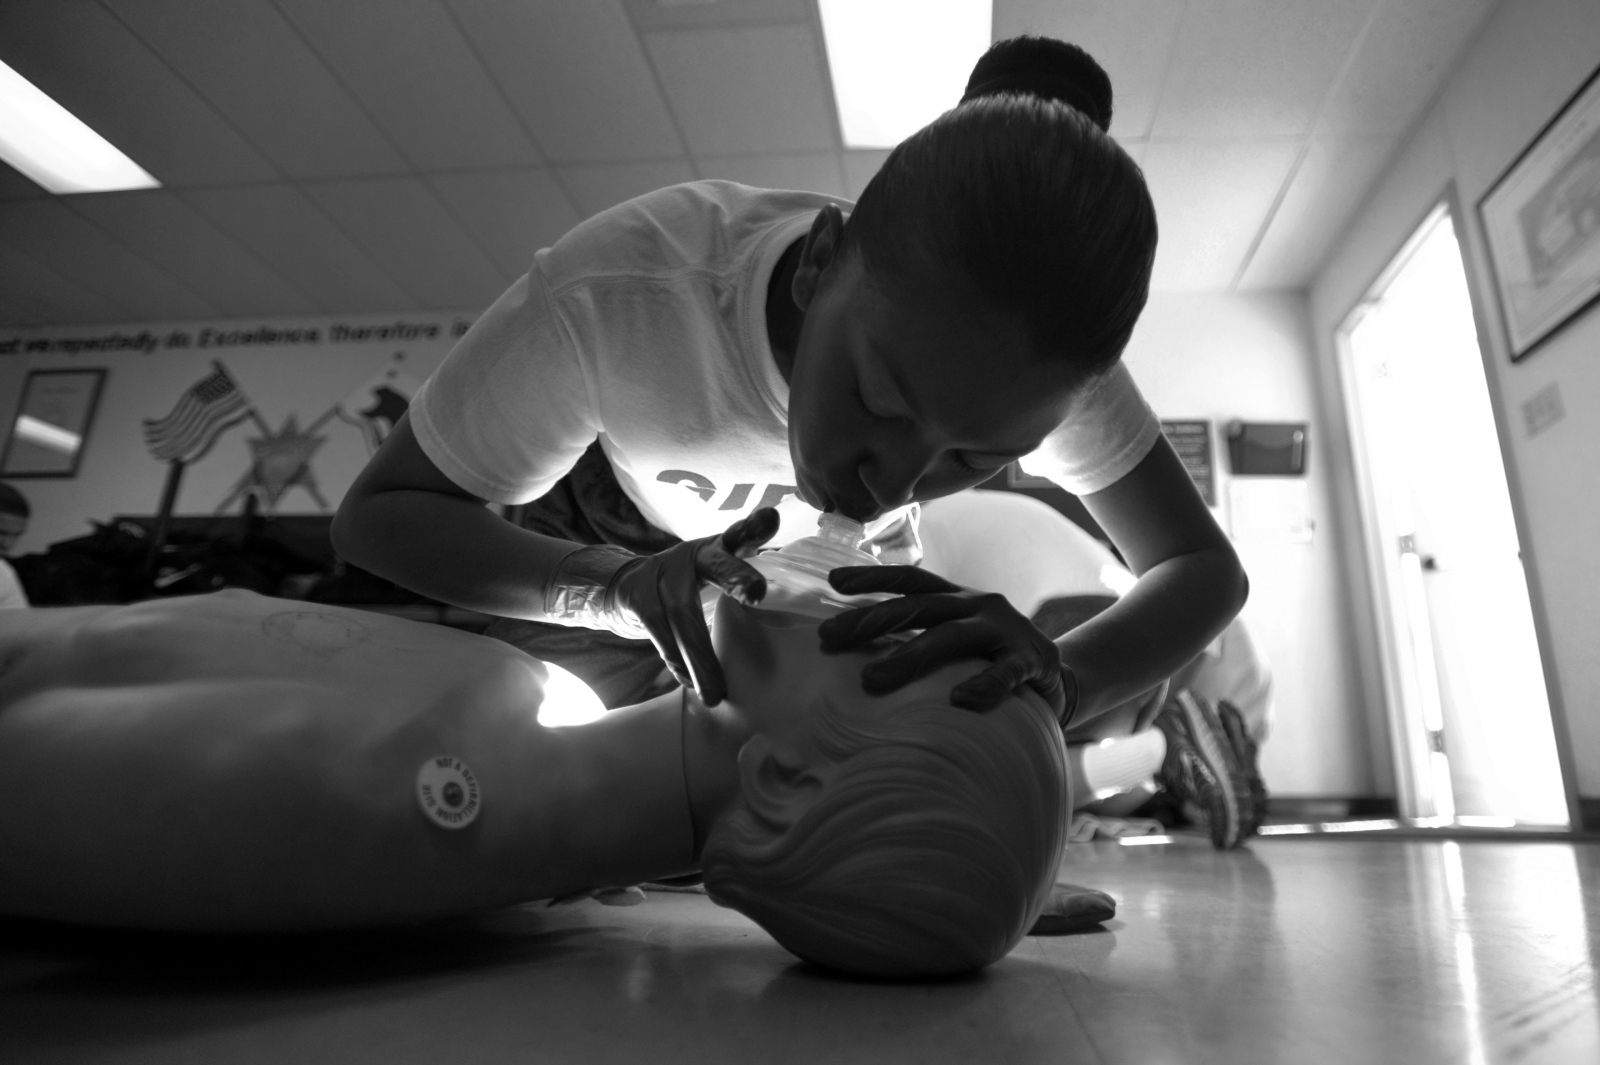 An Explorer recruit in Class 93 practices CPR on a dummy at the North Academy Explorers class at College of the Canyons on Oct. 25, 2014. All Explorers earn their CPR certification as part of their training.